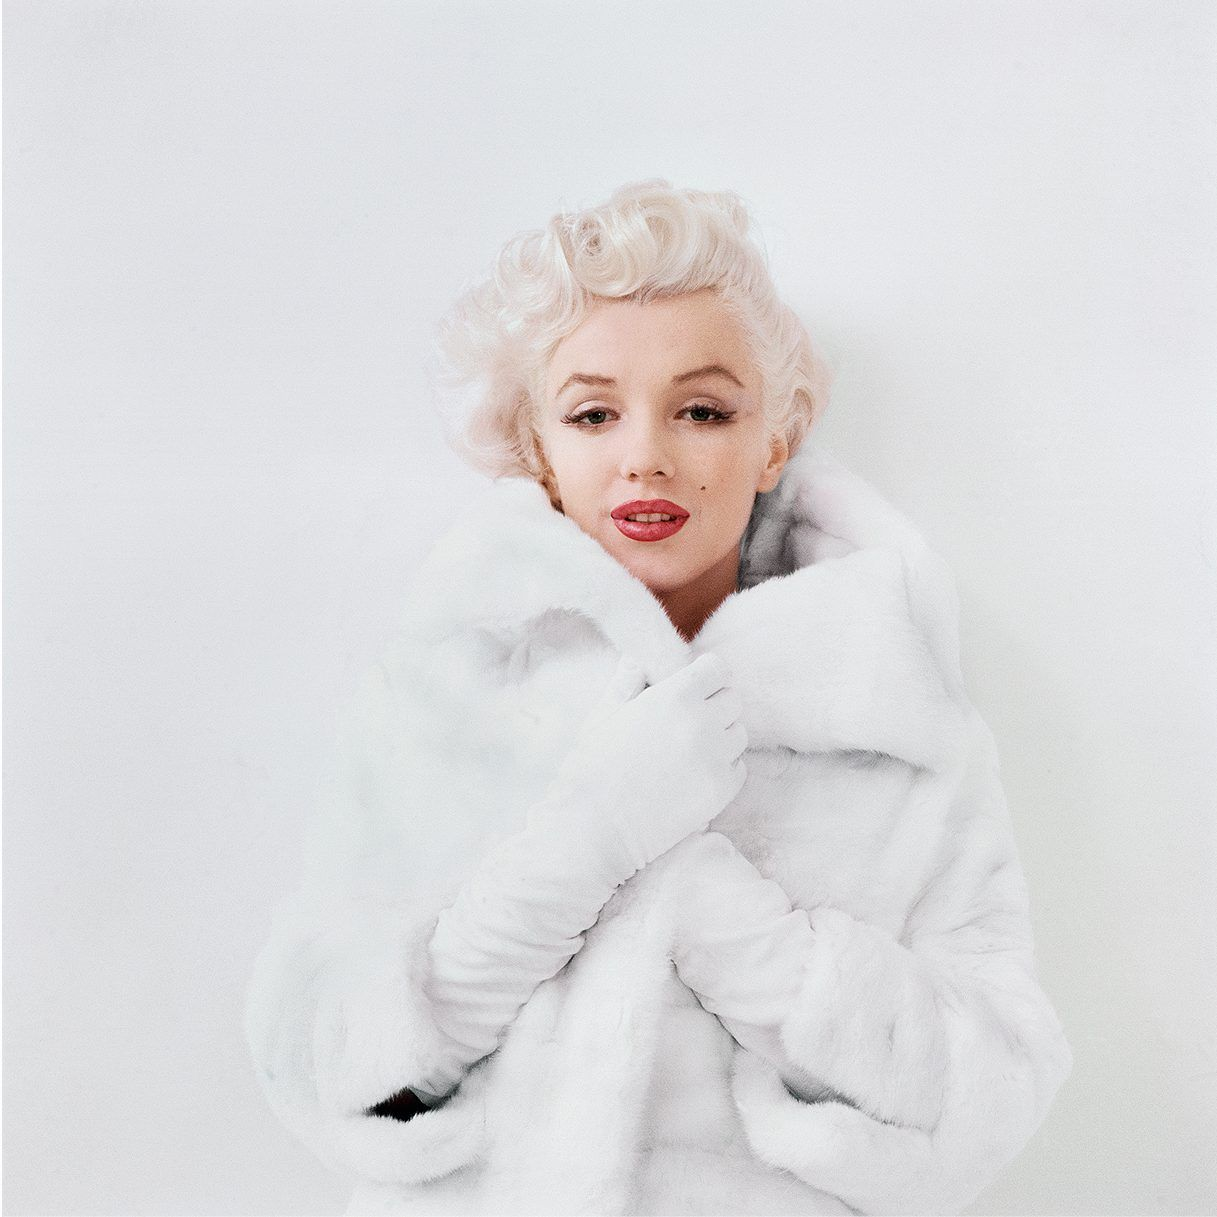 Marilyn Monroe by Milton Greene  Cellophaneland loves the best photography, fashion, style and culture. Where better than with ultimate fashion icon Marilyn Monroe. We feature the best exhibitions, publications, museums and collections. Subscribe to our mailing list for the latest in Arts & Culture or visit at www.cellophaneland.com